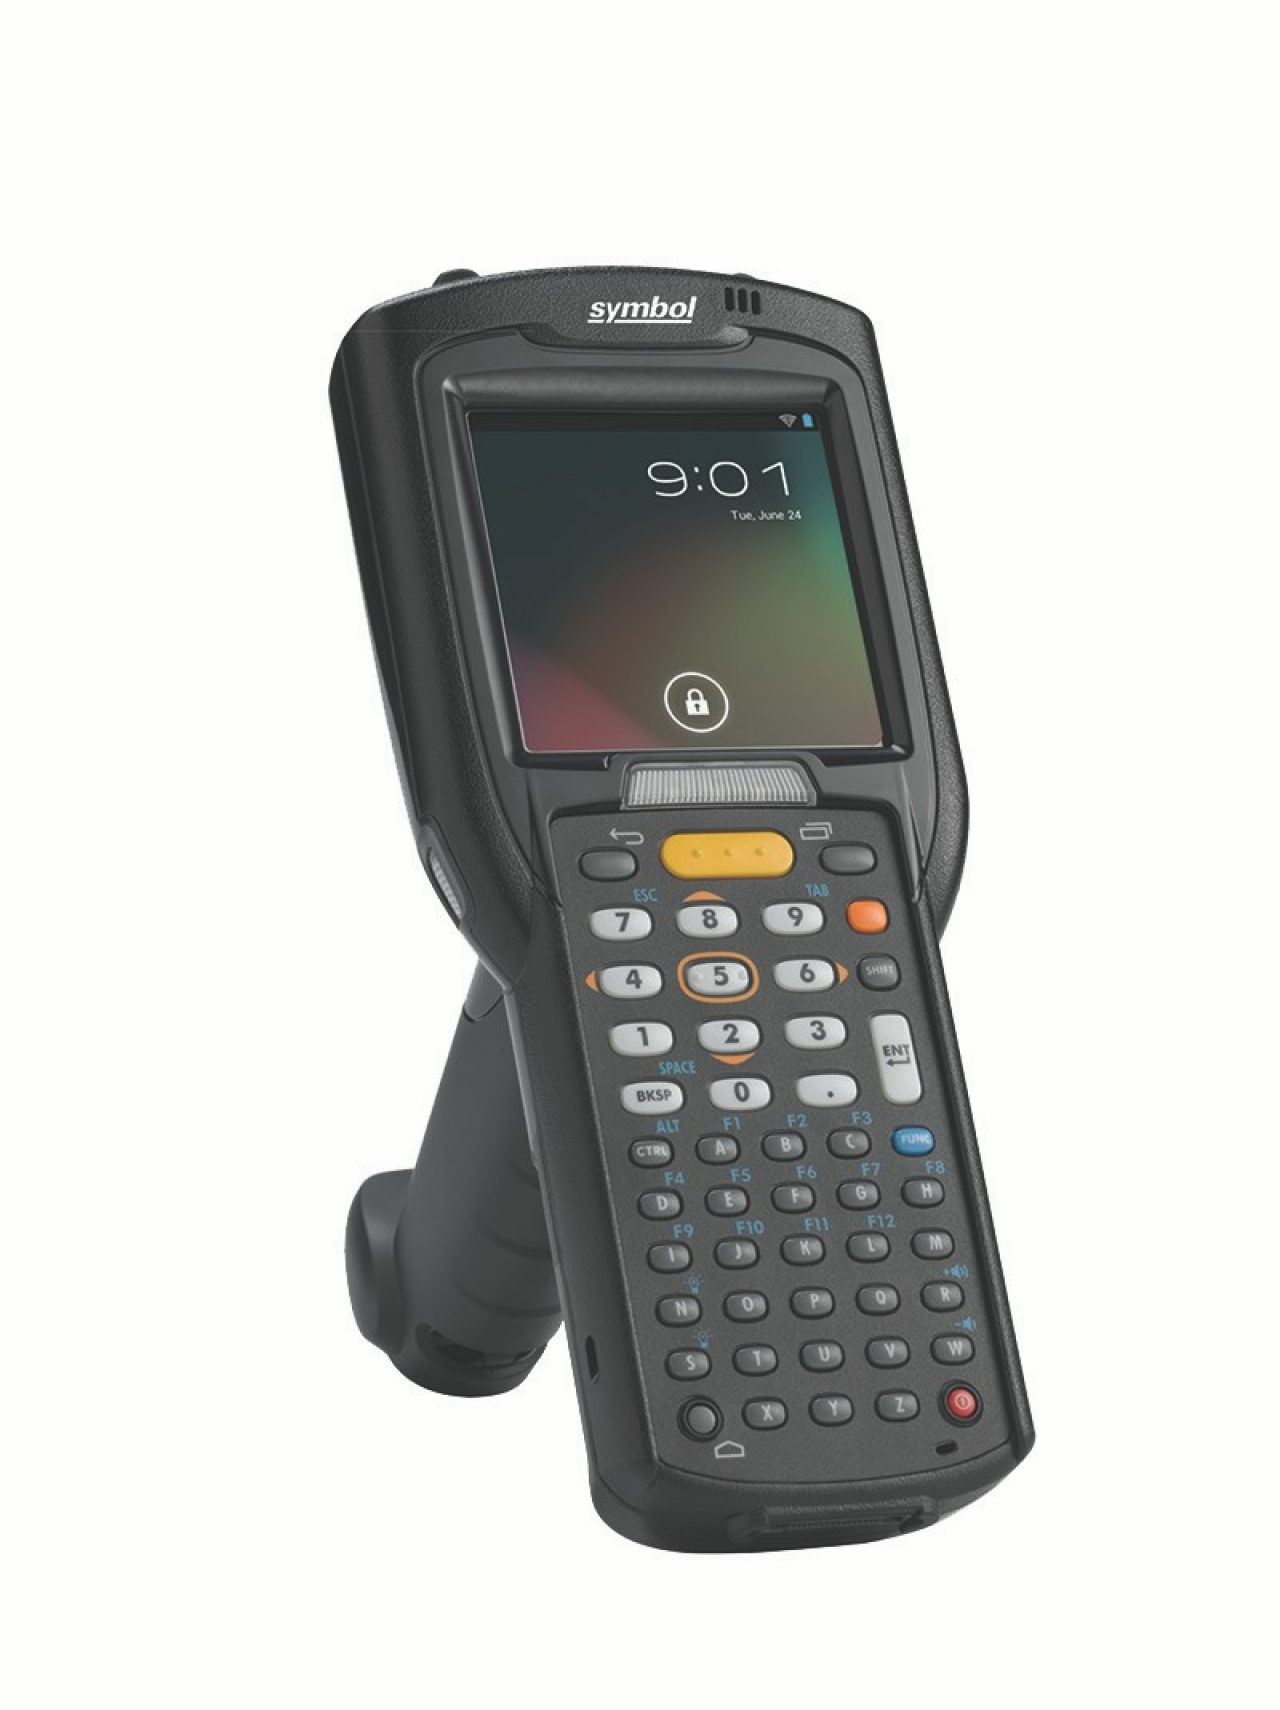 Zebra MC3200 Mobile Computer, Right View